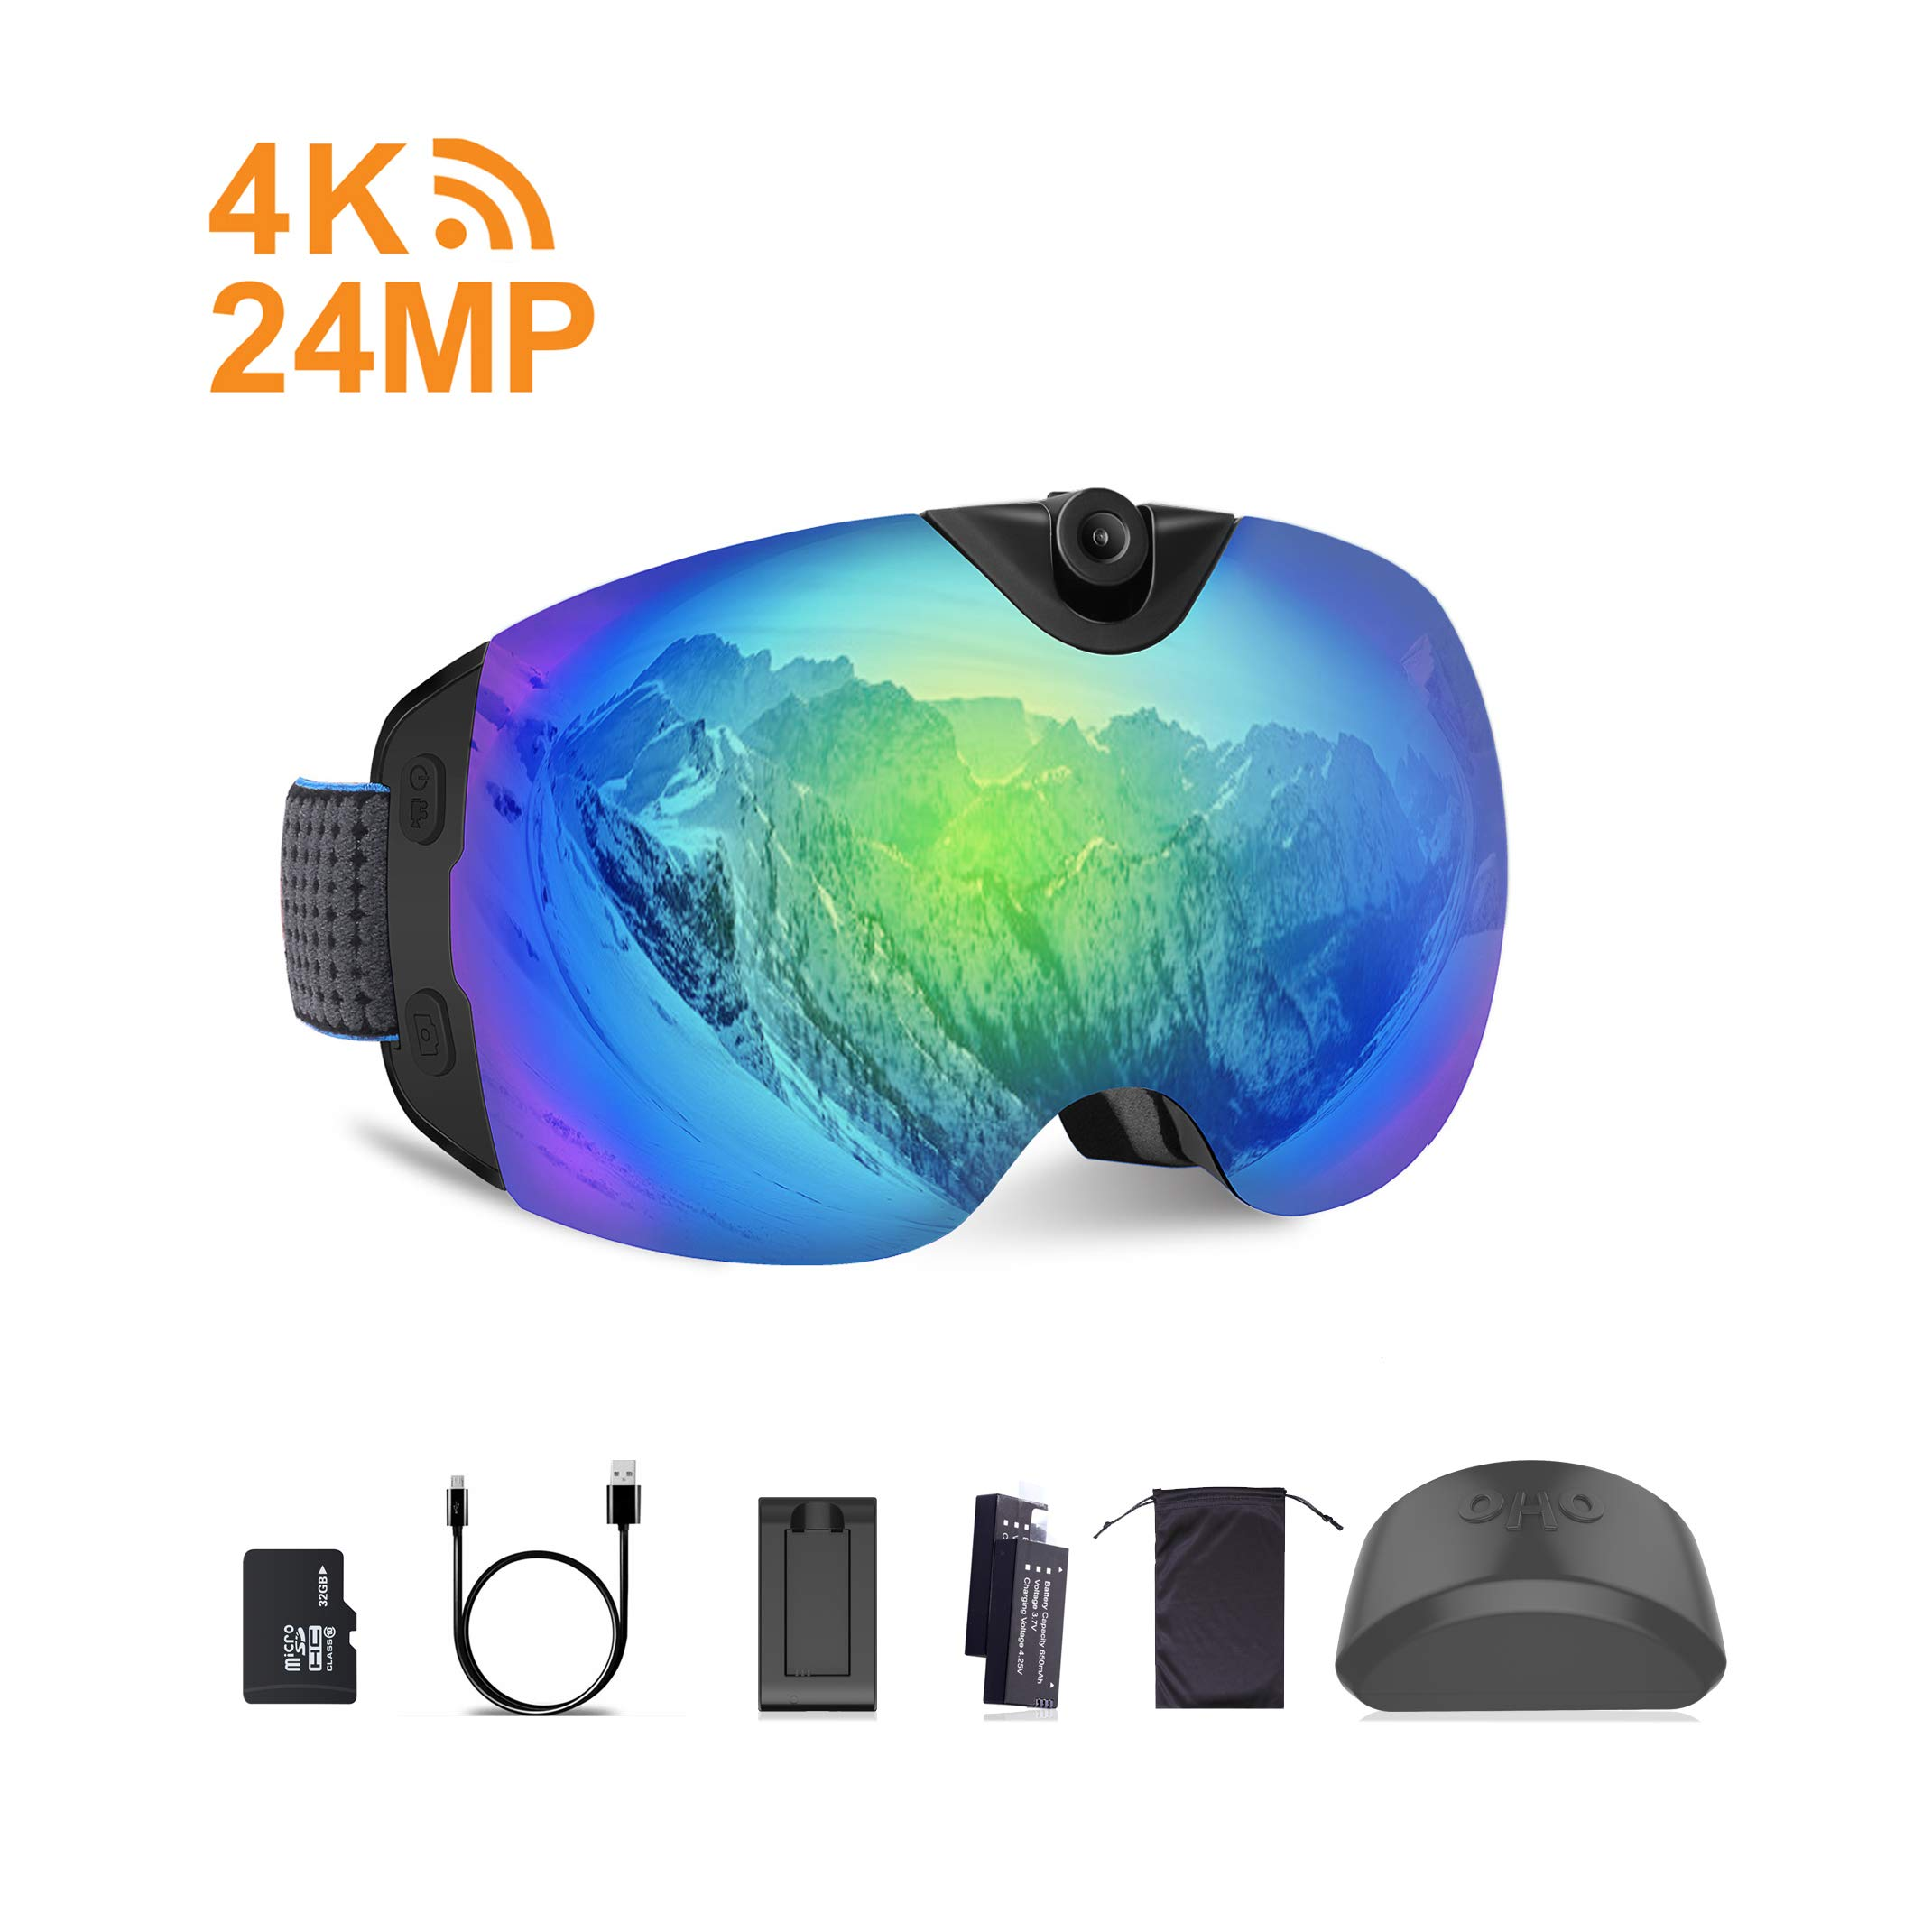 OhO 4K WiFi Ultra HD Action Camera Ski Goggles with 24MP and 140 Degree Adjusted Camera Angle Up and Down, Low Temperature Working Battery, Anti Fog and UV400 Protection Ski Lens with 32GB Memory by OhO sunshine